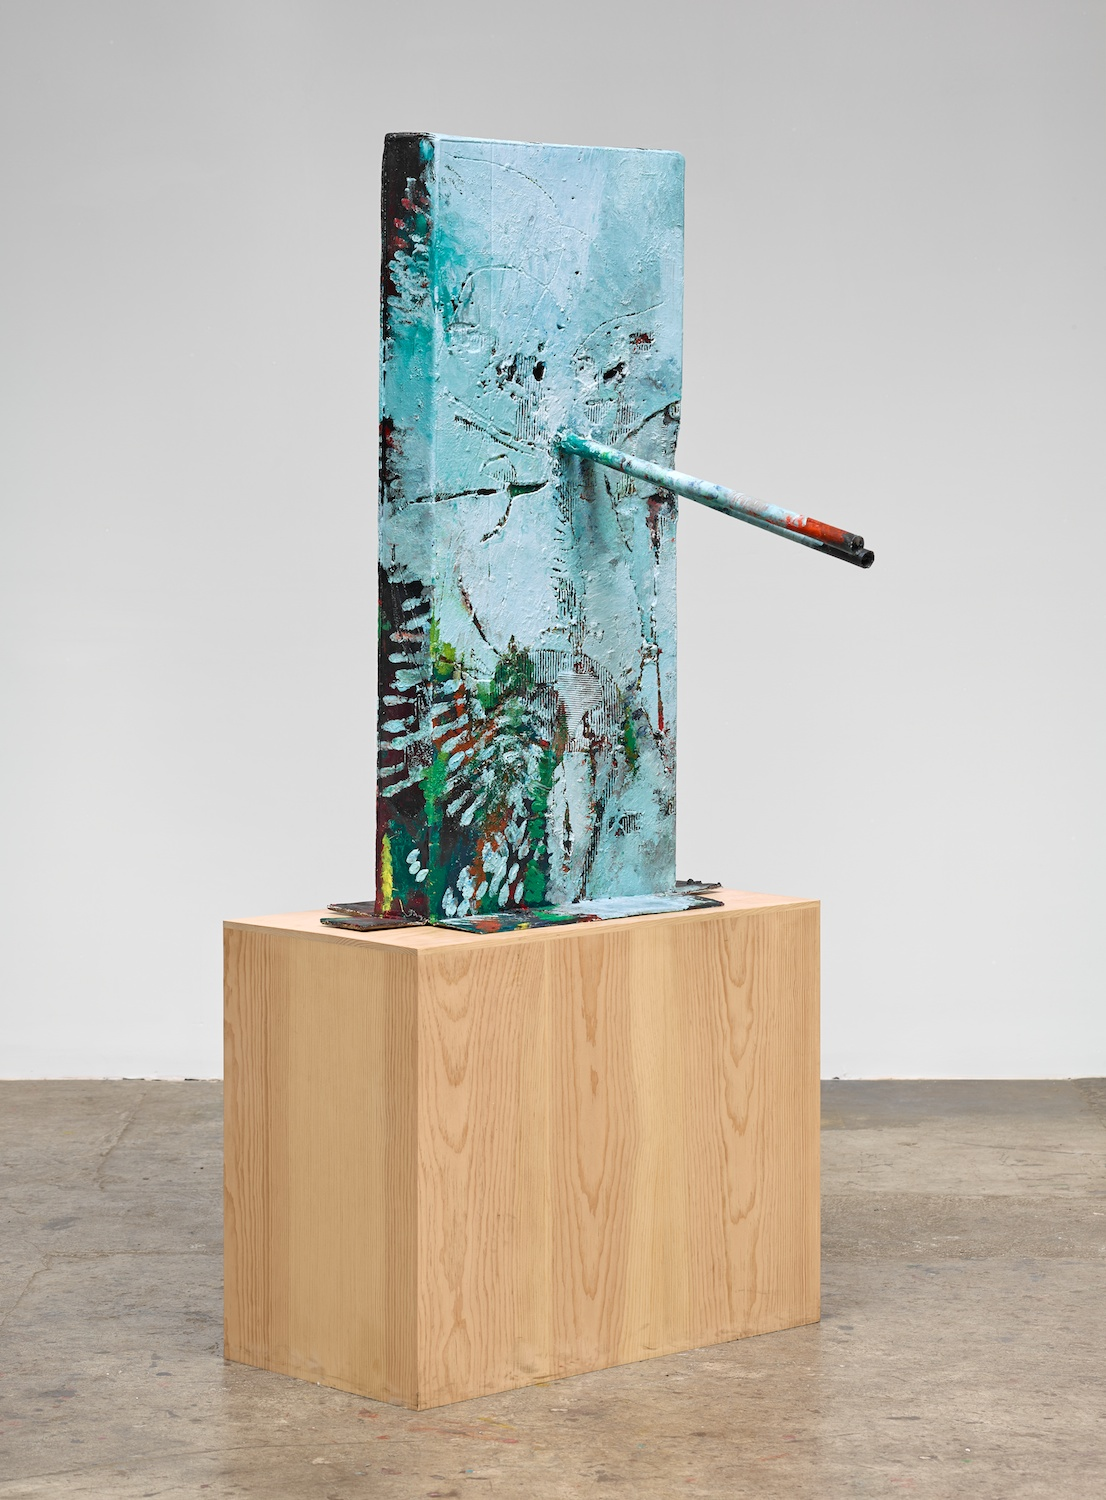 Mark Grotjahn  Untitled (Blue Face, Italian Mask M30.a)  2013 Painted bronze 53h x 34w x 38d in M30.a